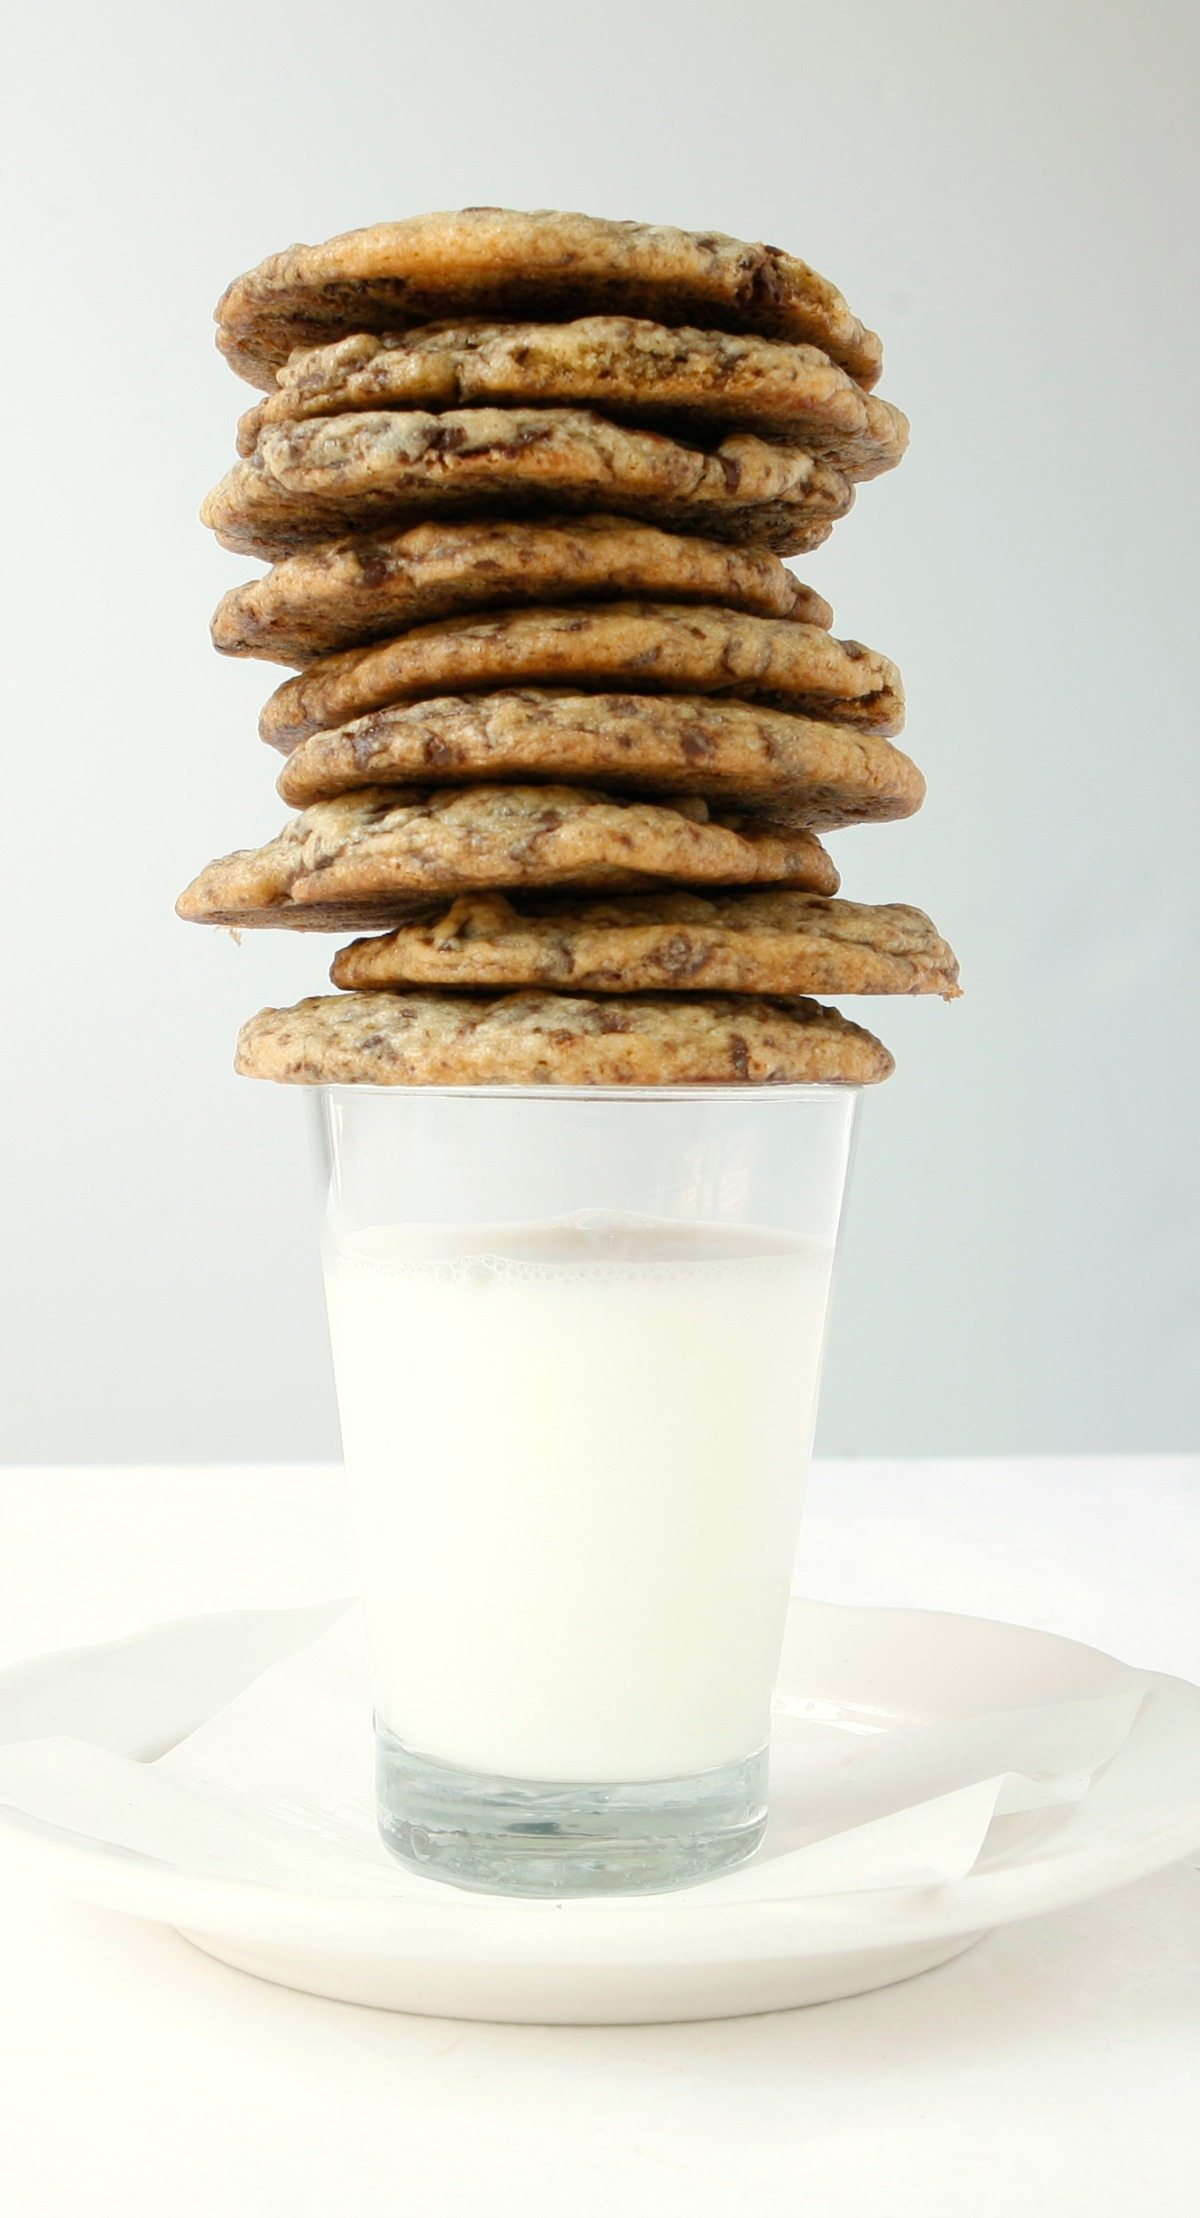 Chocolate chip cookies made using the best ingredients I could find - it was so cool to taste the difference!